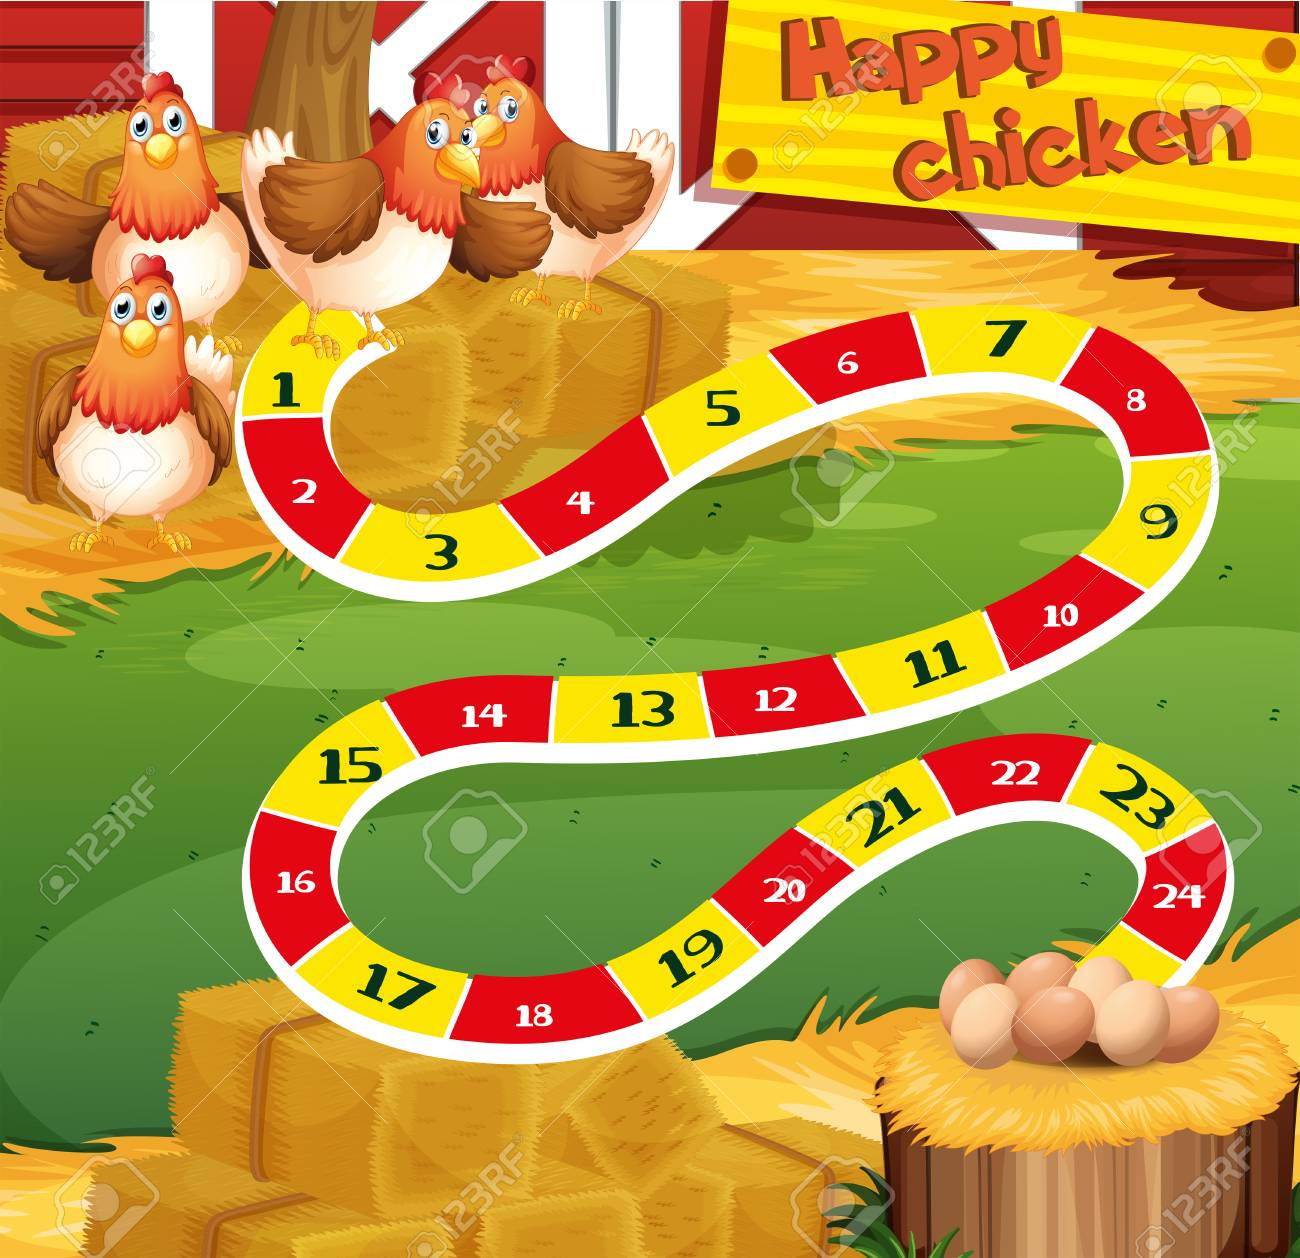 boardgame template with chicken in the farm illustration royalty